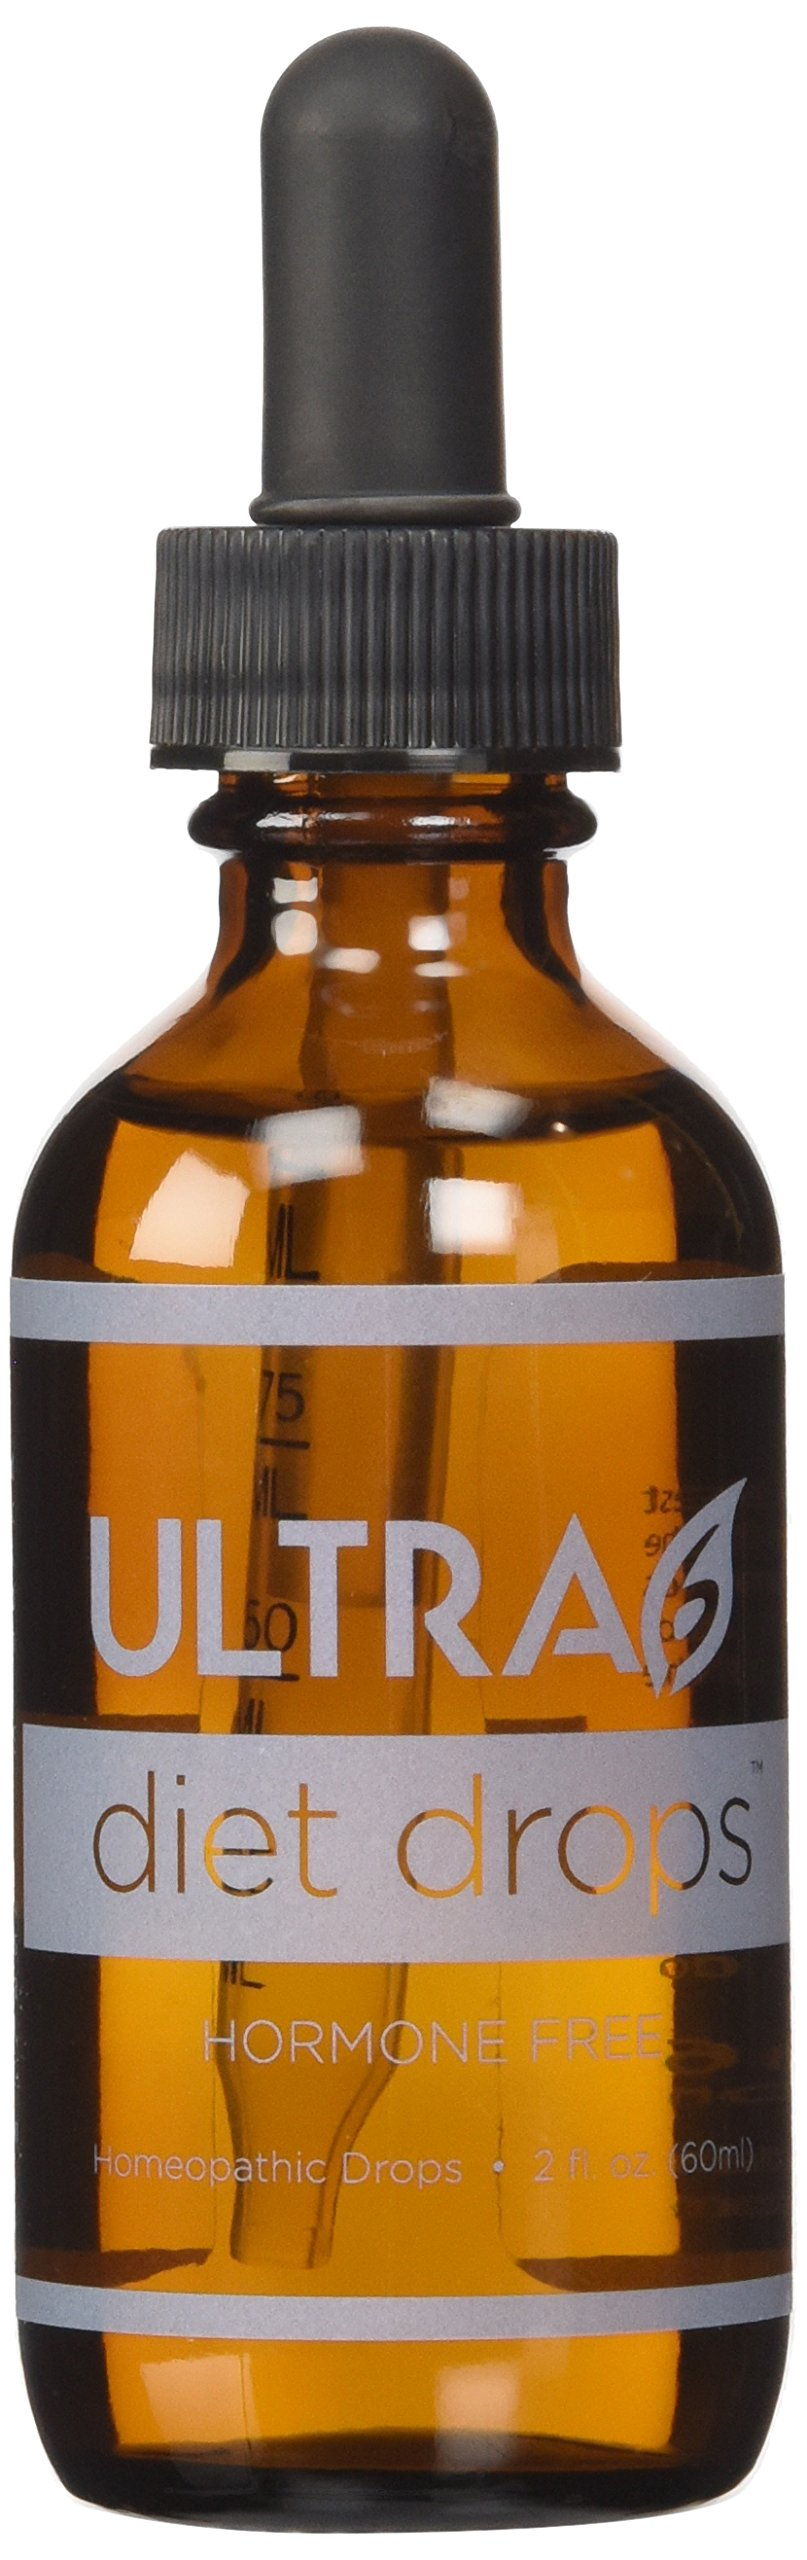 Ultra6 Diet Drops Complete Weight Loss System - Proven Diet Guide Included by Ultra6 Nutrition